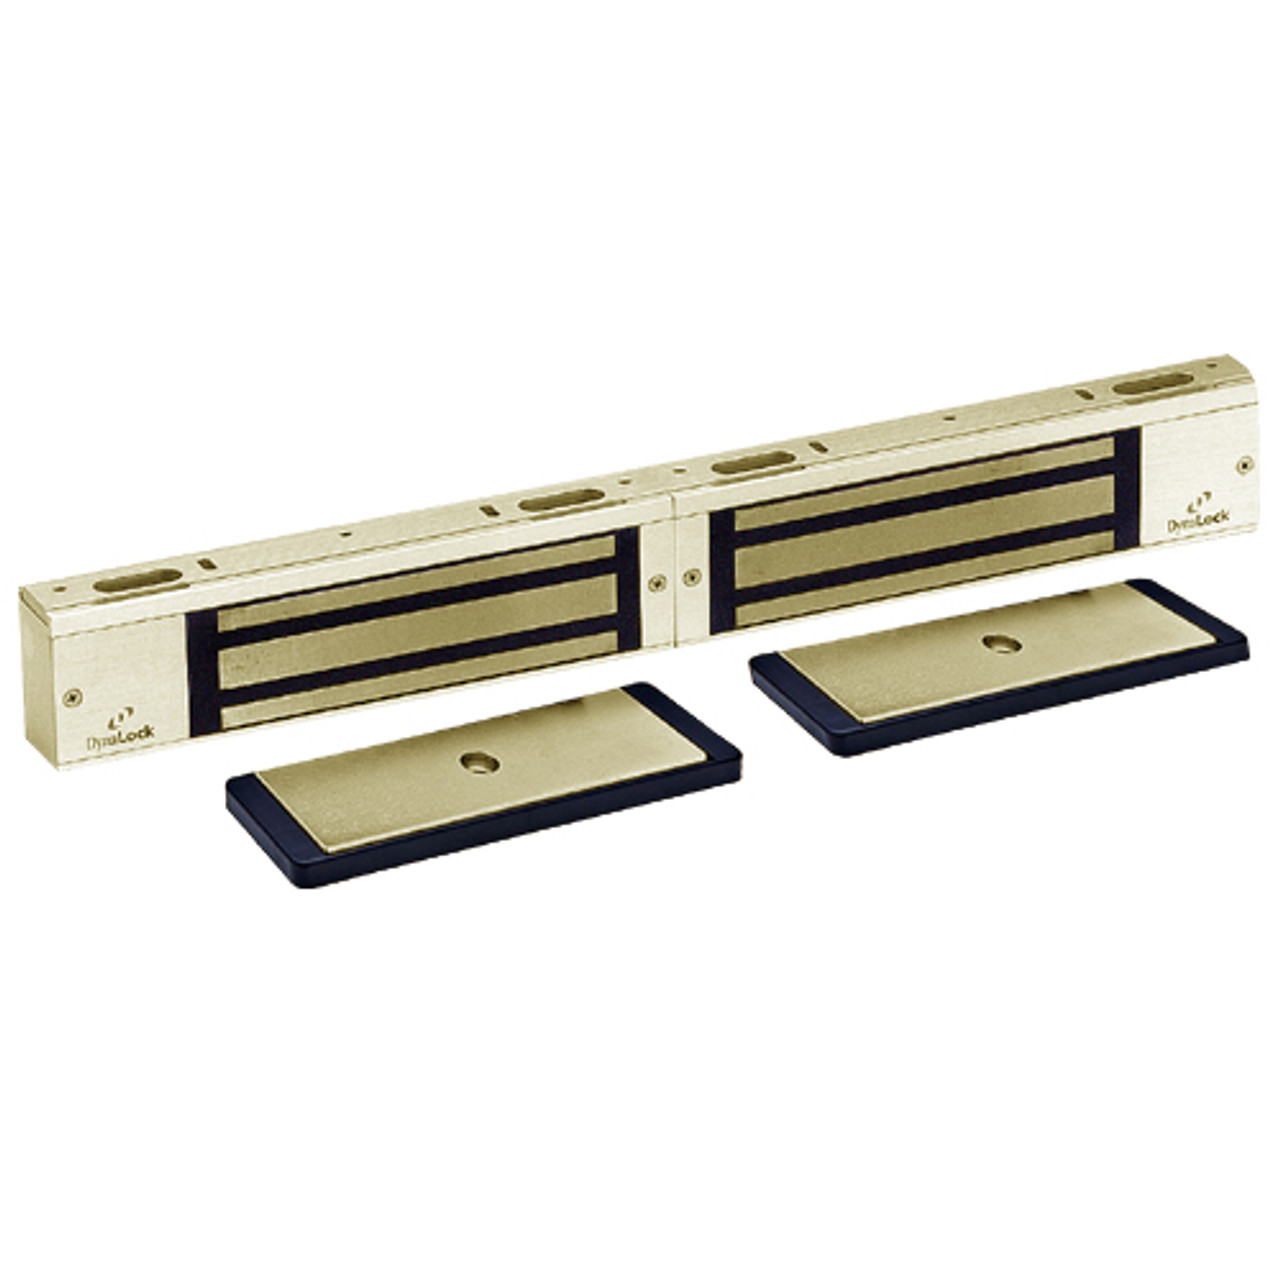 3002TJ32-US4-HSM2 DynaLock 3000 Series 1500 LBs Double Electromagnetic Lock for Inswing Door with HSM in Satin Brass